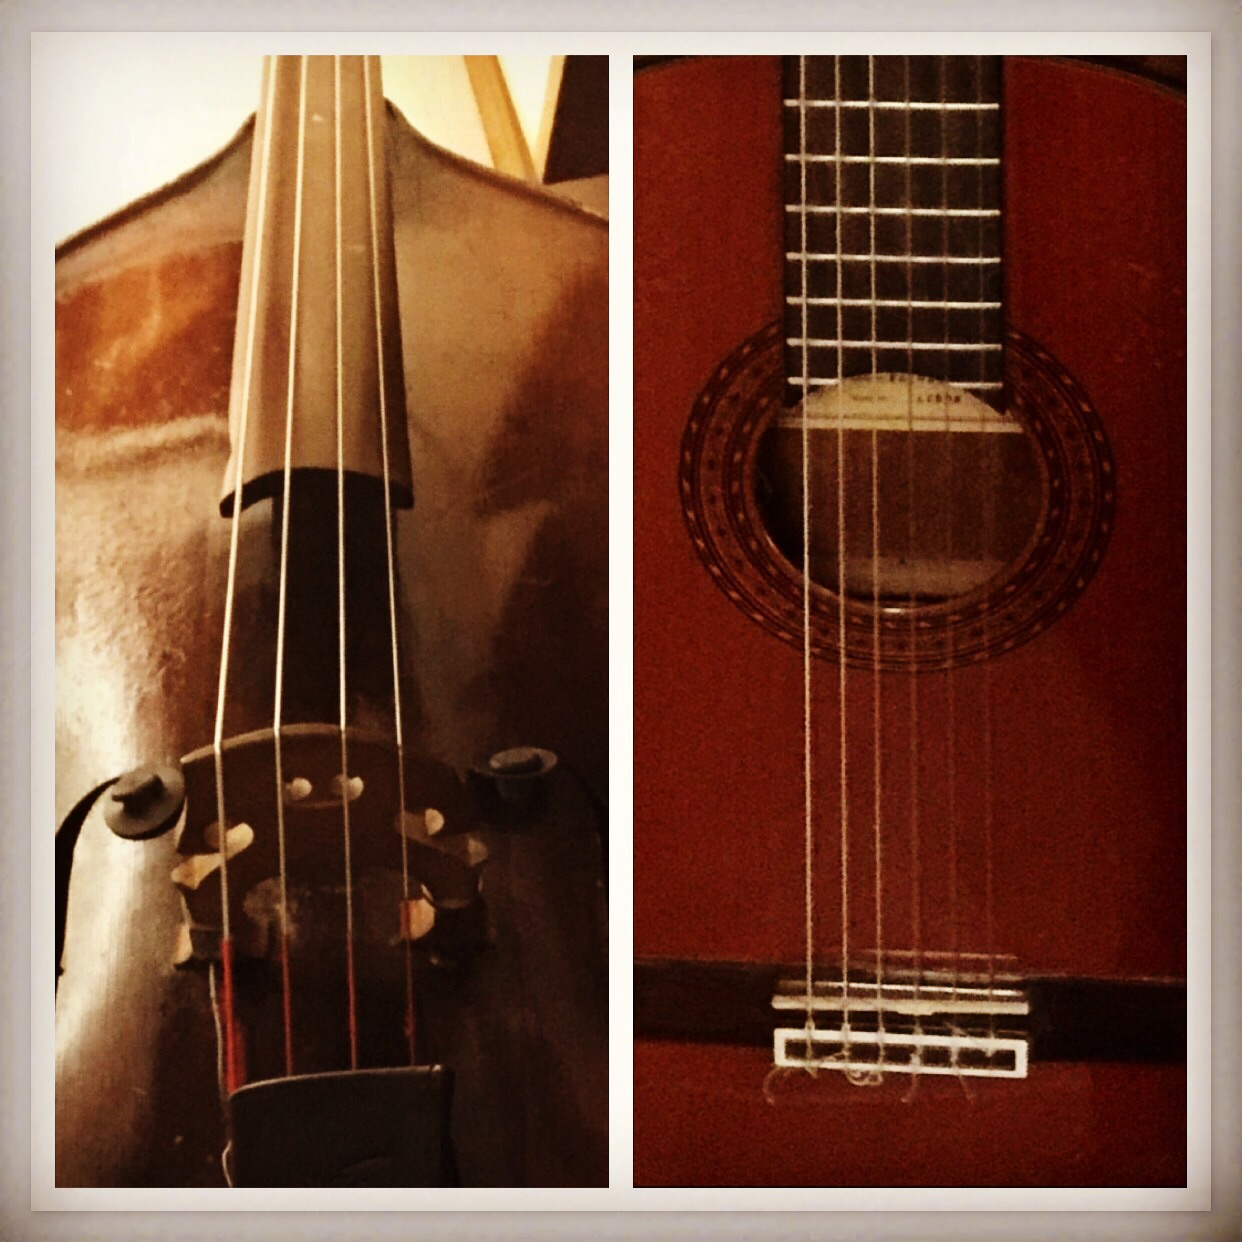 #uprightbass #acousticguitar